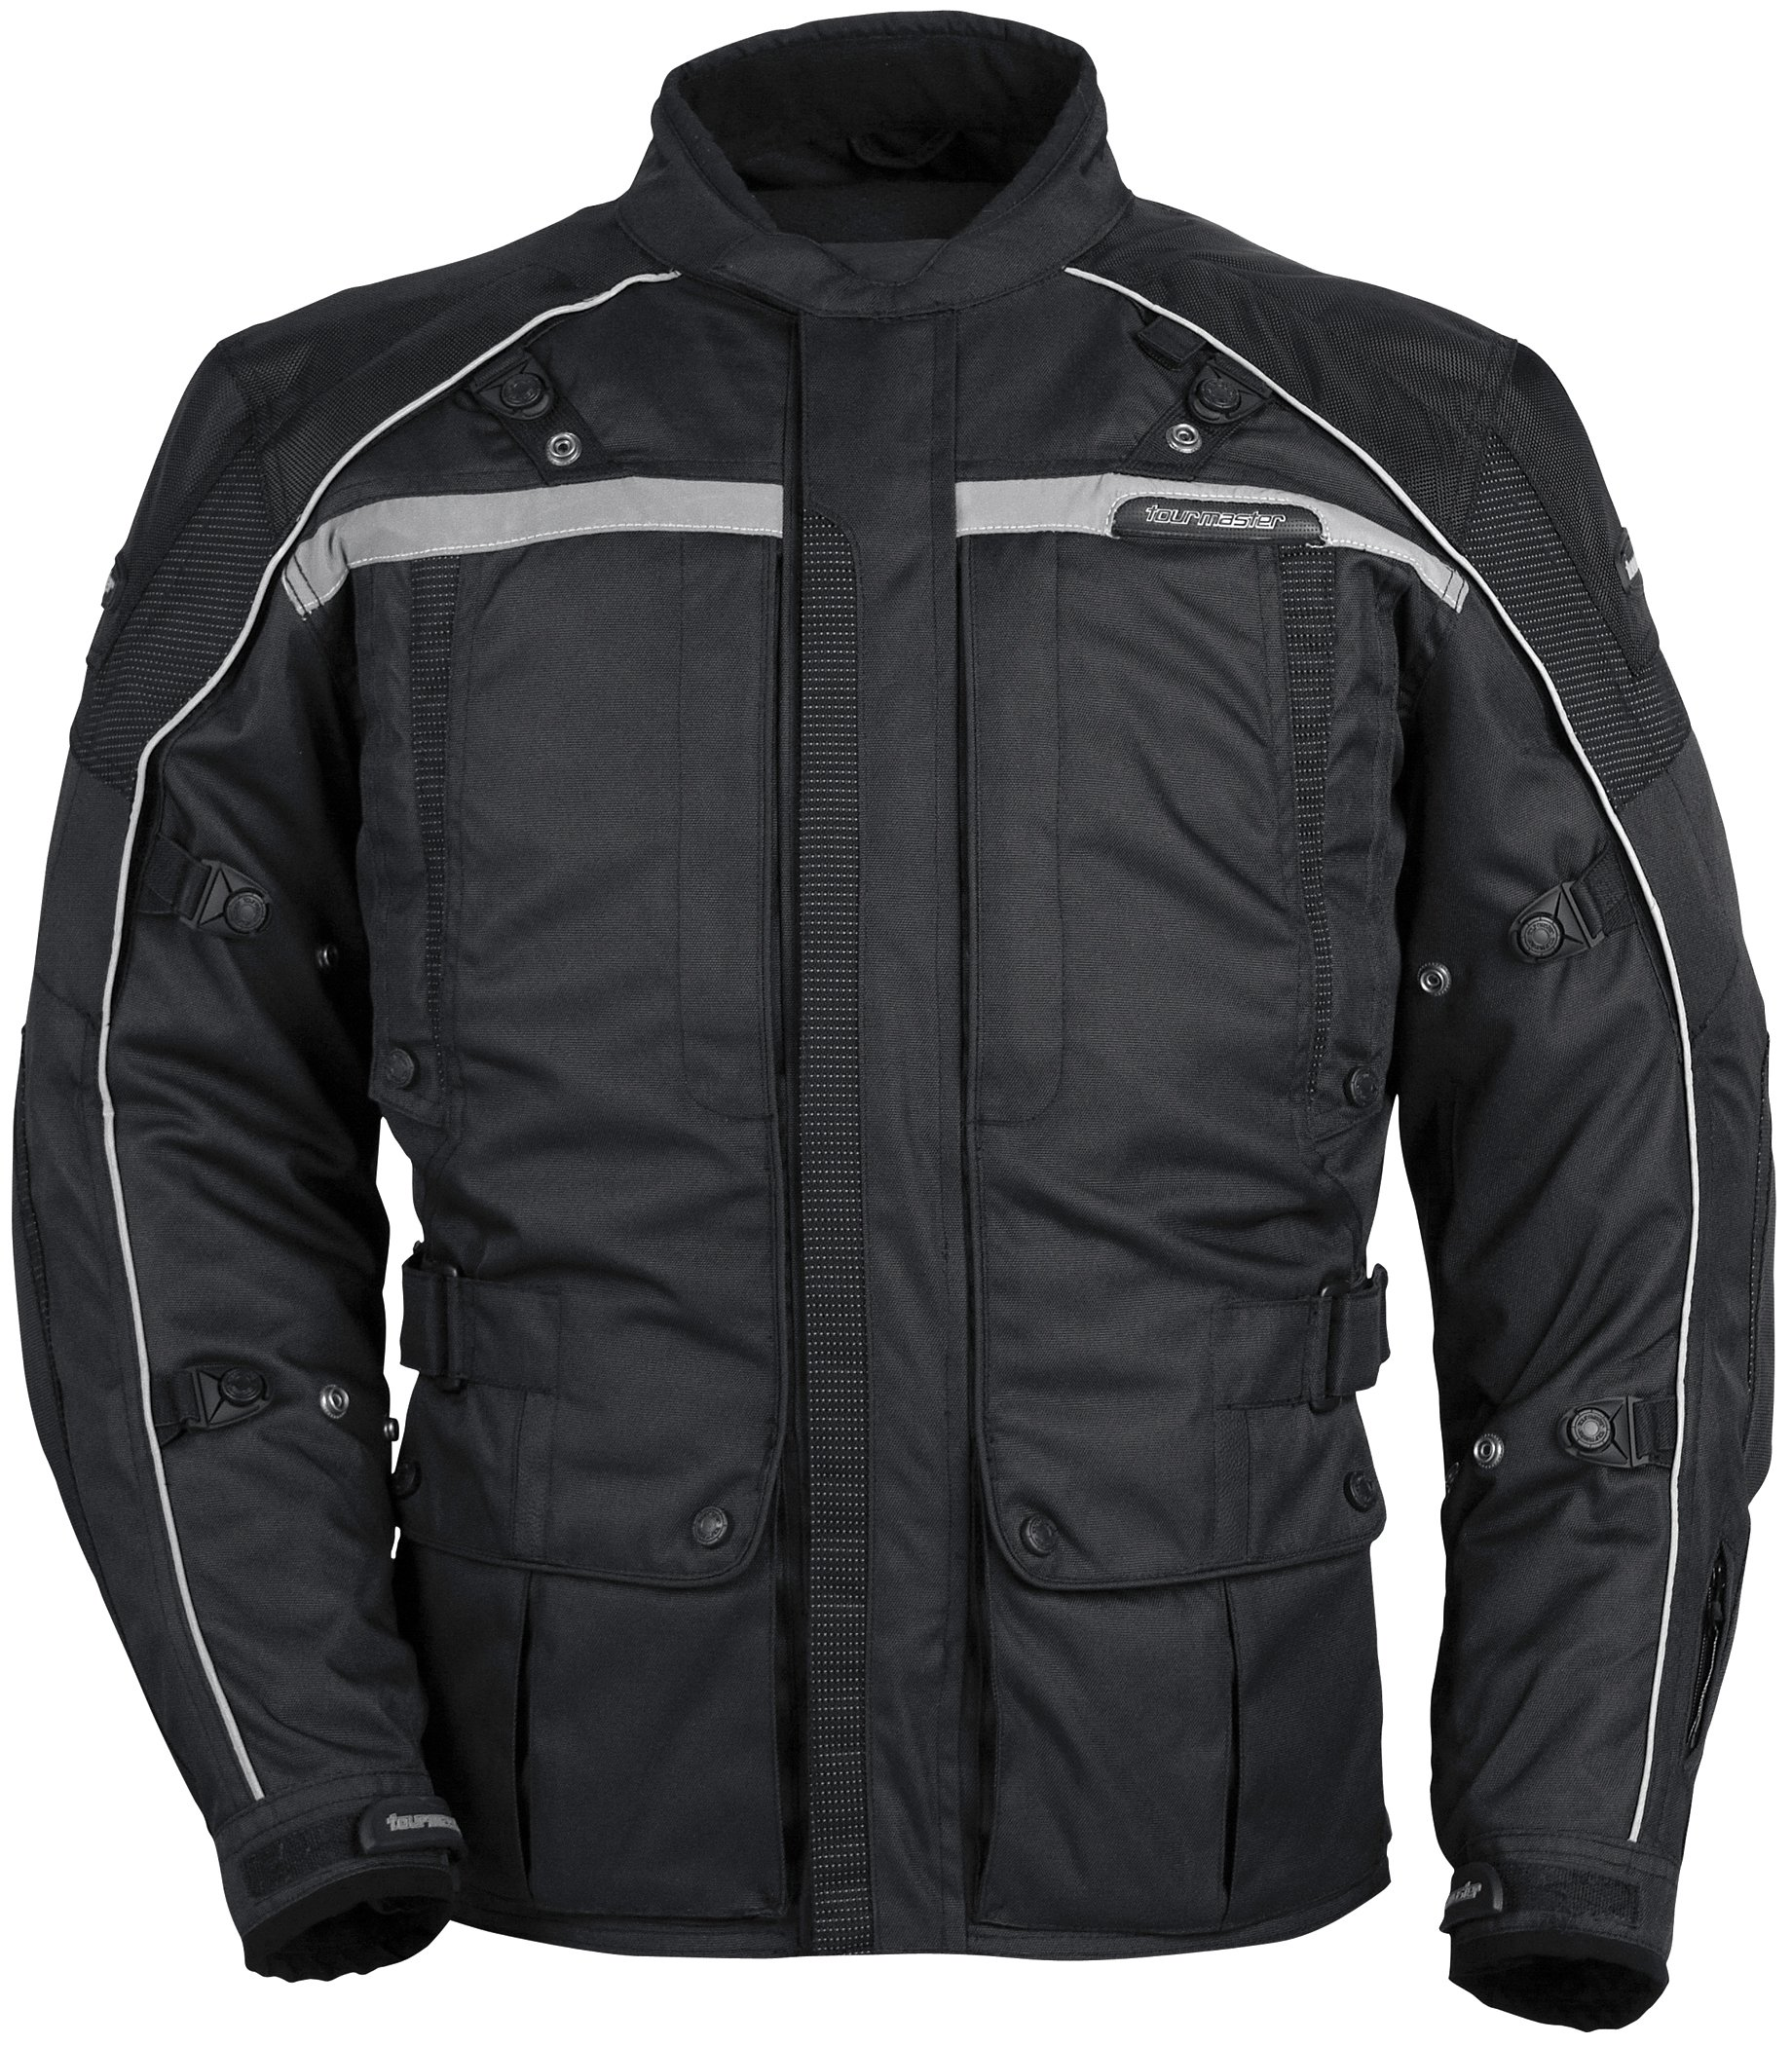 TourMaster Transition Series 3 Men's 3/4 Outer Shell Textile Motorcycle Jacket (Black, XX-Large)